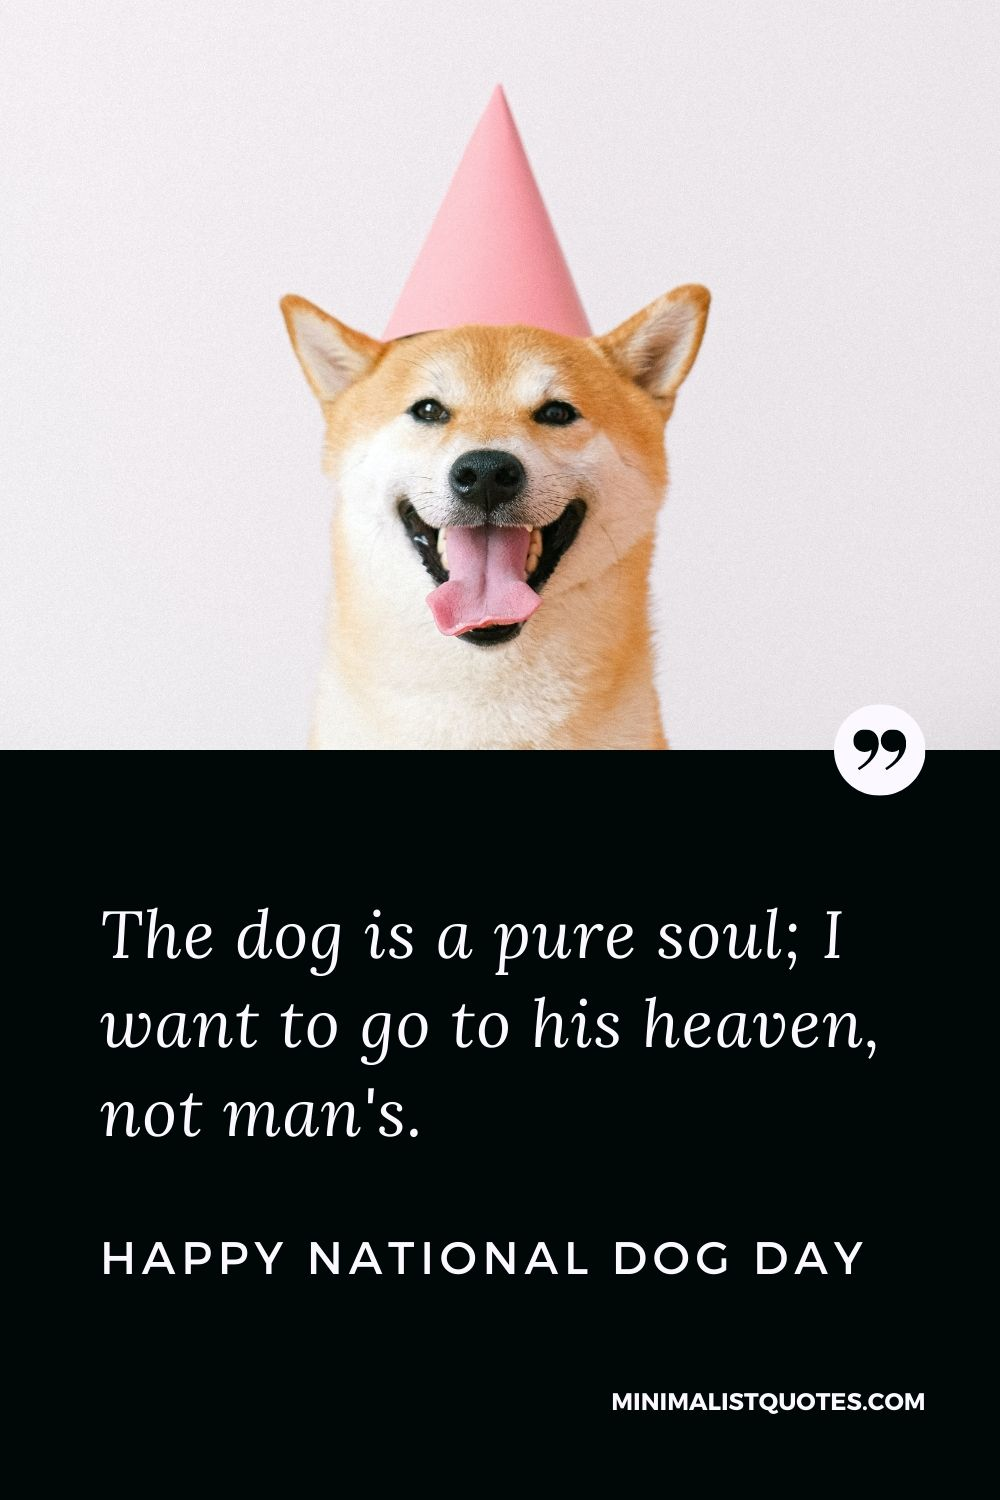 National Dog Day Quote, Message & Wish With Image: The dog is a puresoul; I want to go to his heaven, not man's. Happy National Dog Day!